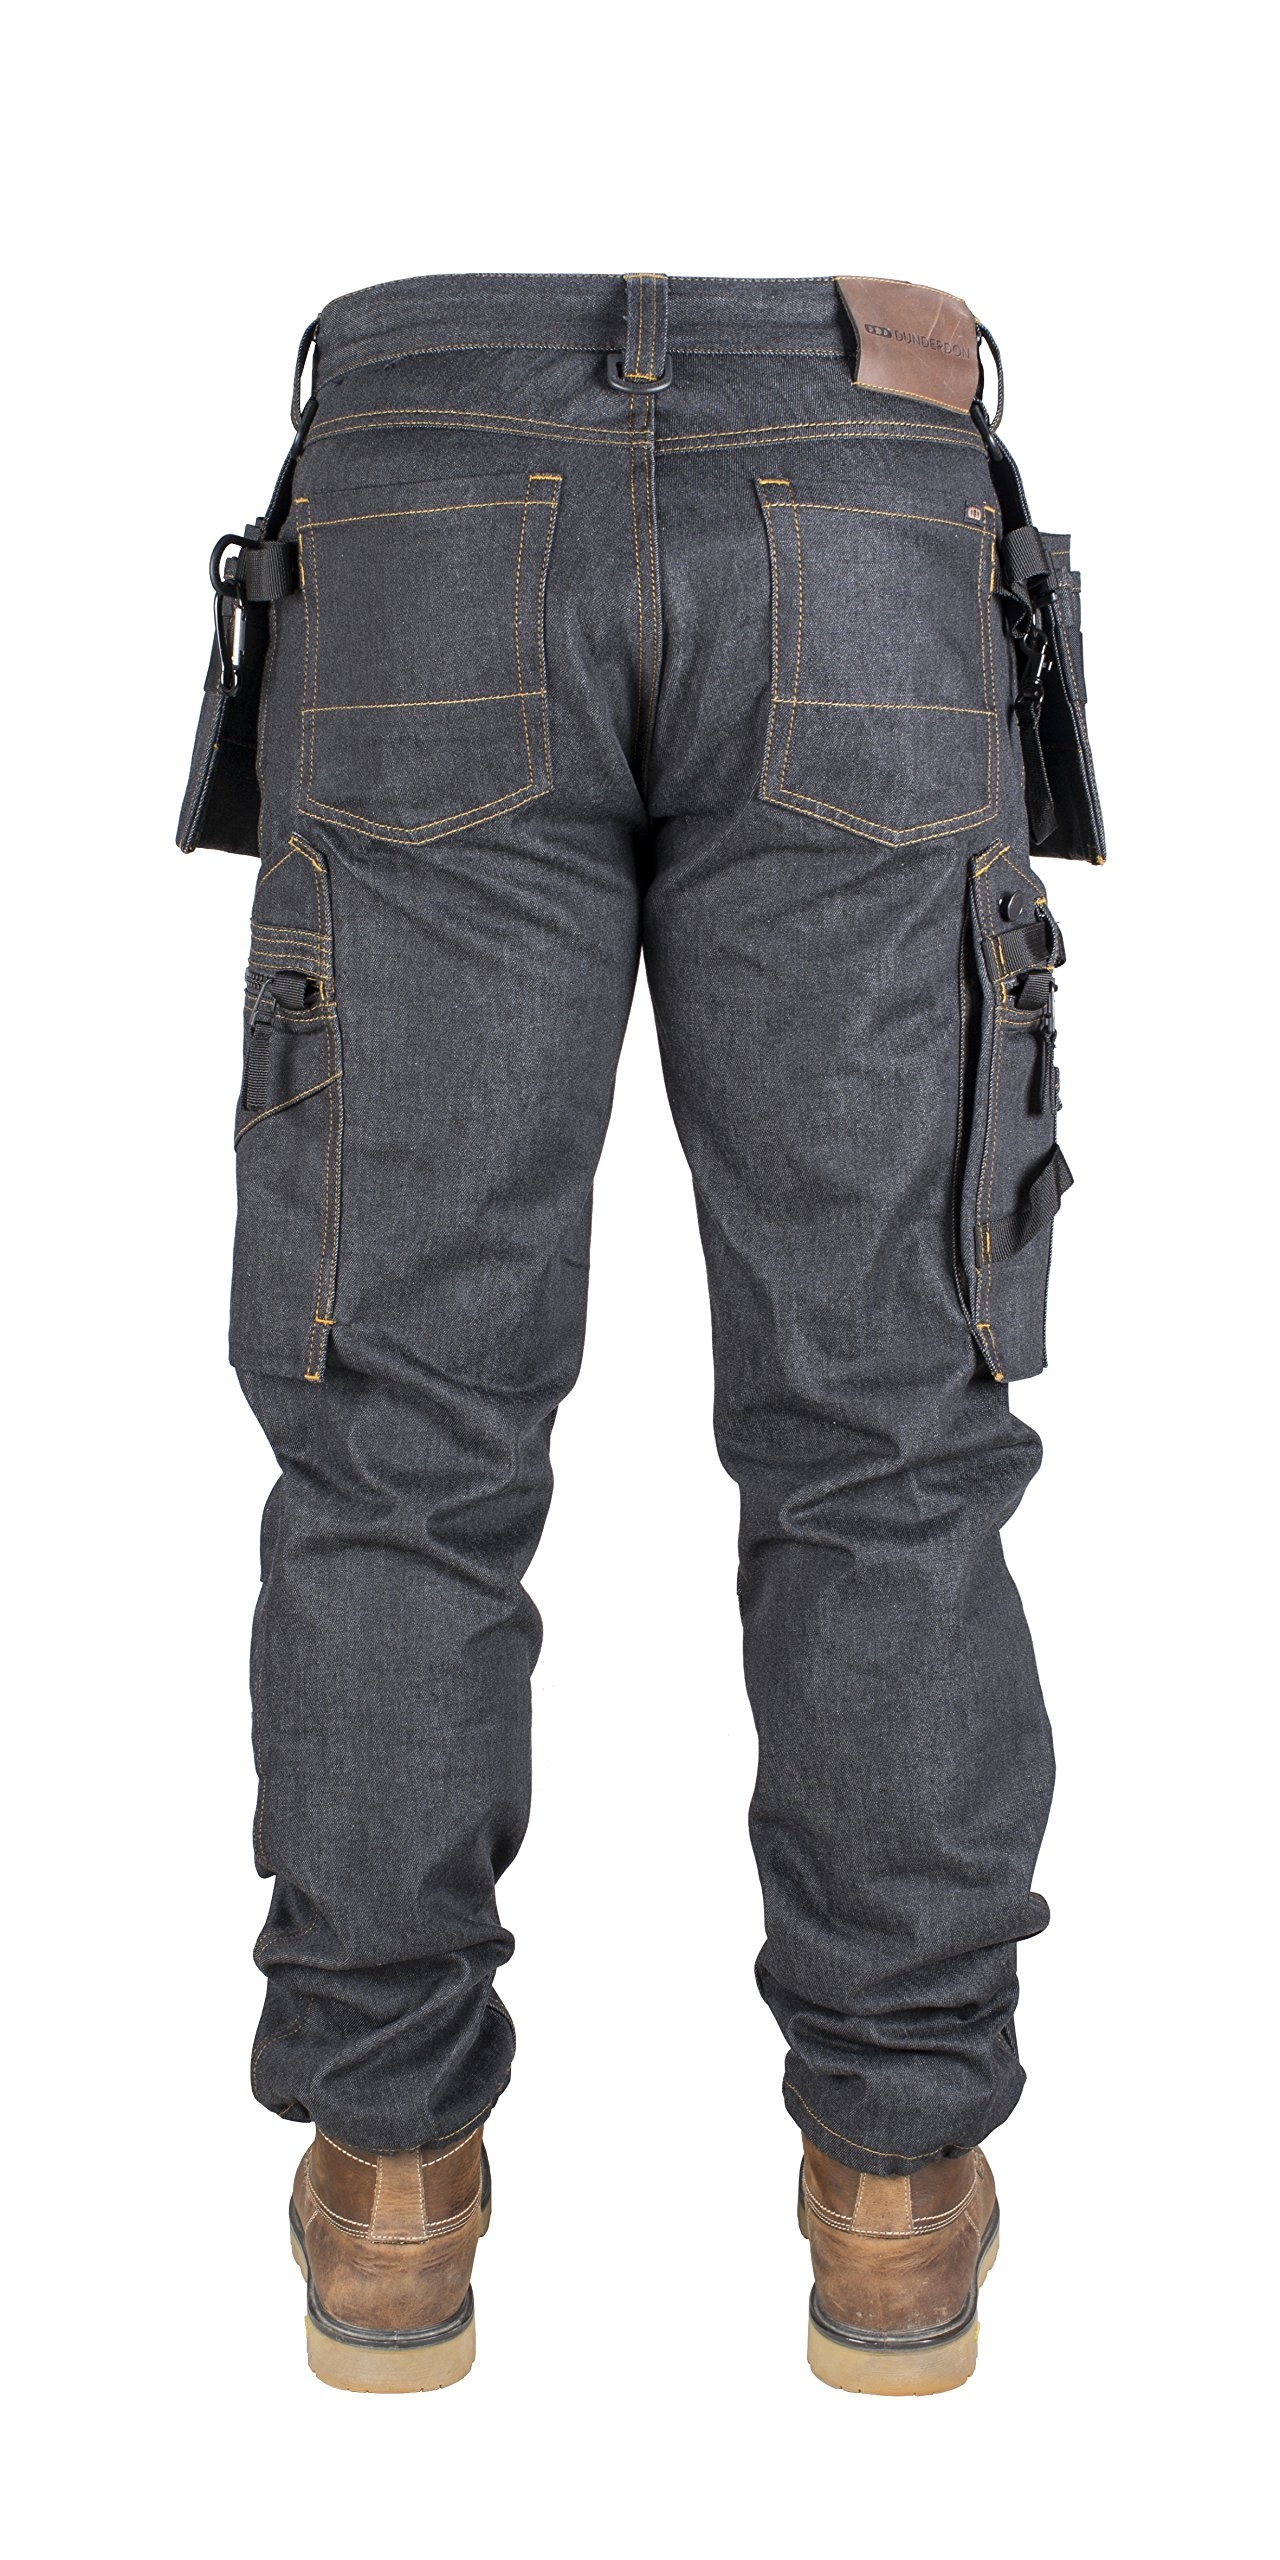 Snickers DW10152710003432''P15'' Trousers, W34/L32, Denim/Black by Snickers (Image #2)